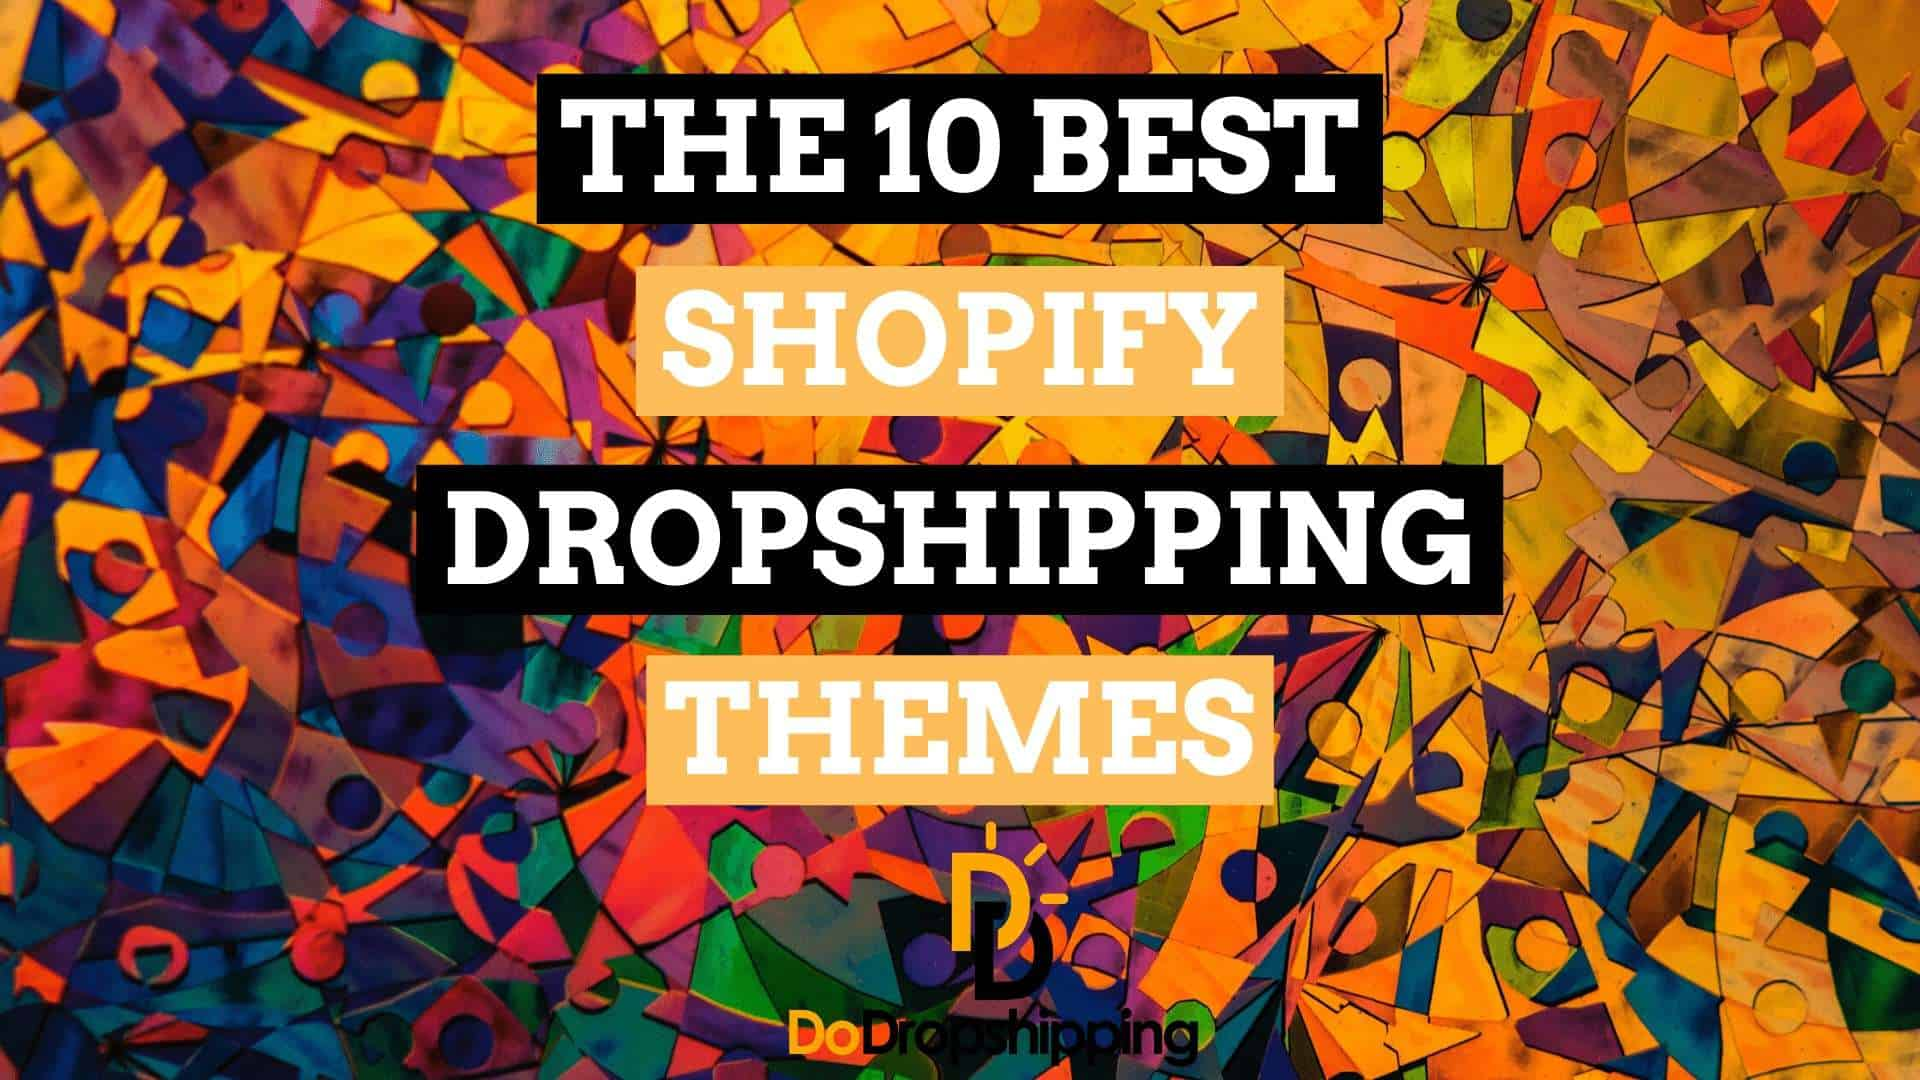 The 8 Best Shopify Dropshipping Themes in 2019   Boost Sales!